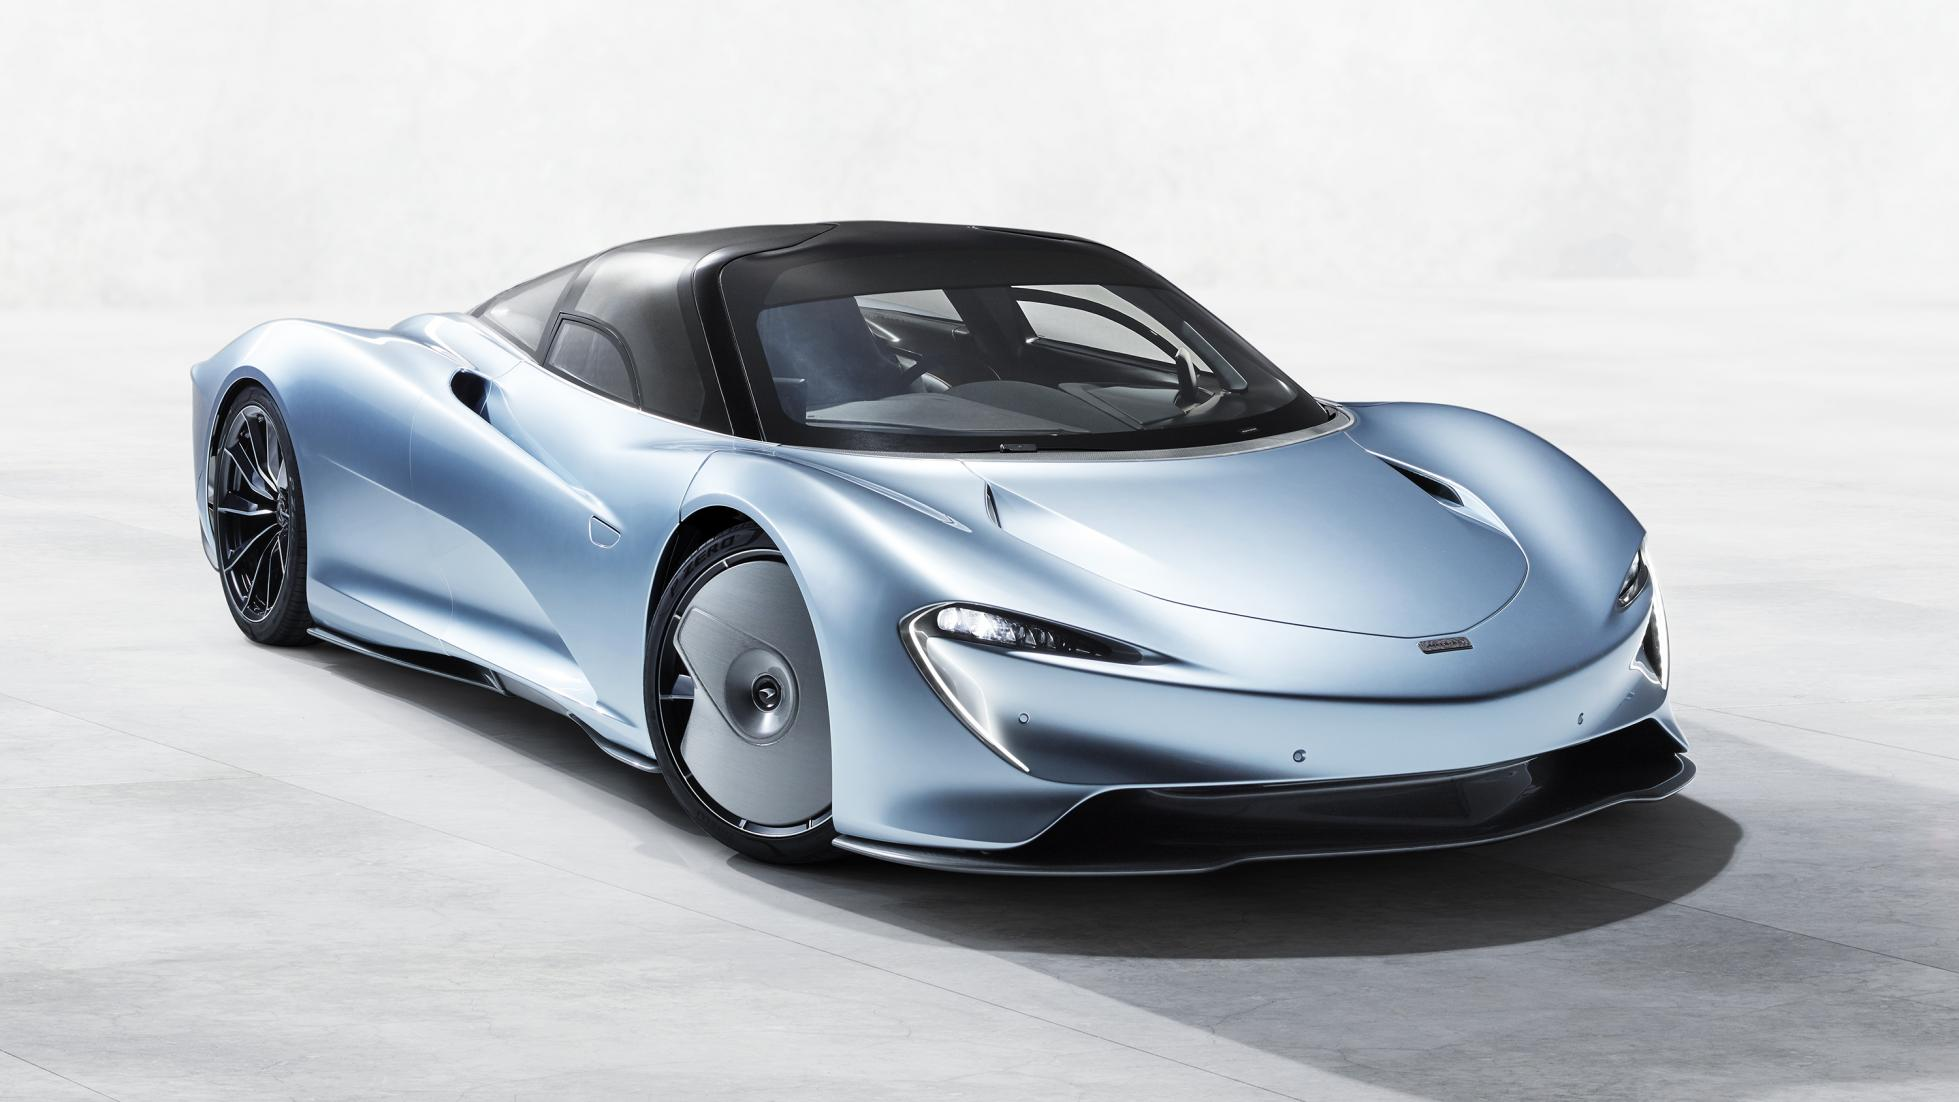 The $2.25 million Speedtail is McLaren's fastest ever roadcar with 250mph top speed